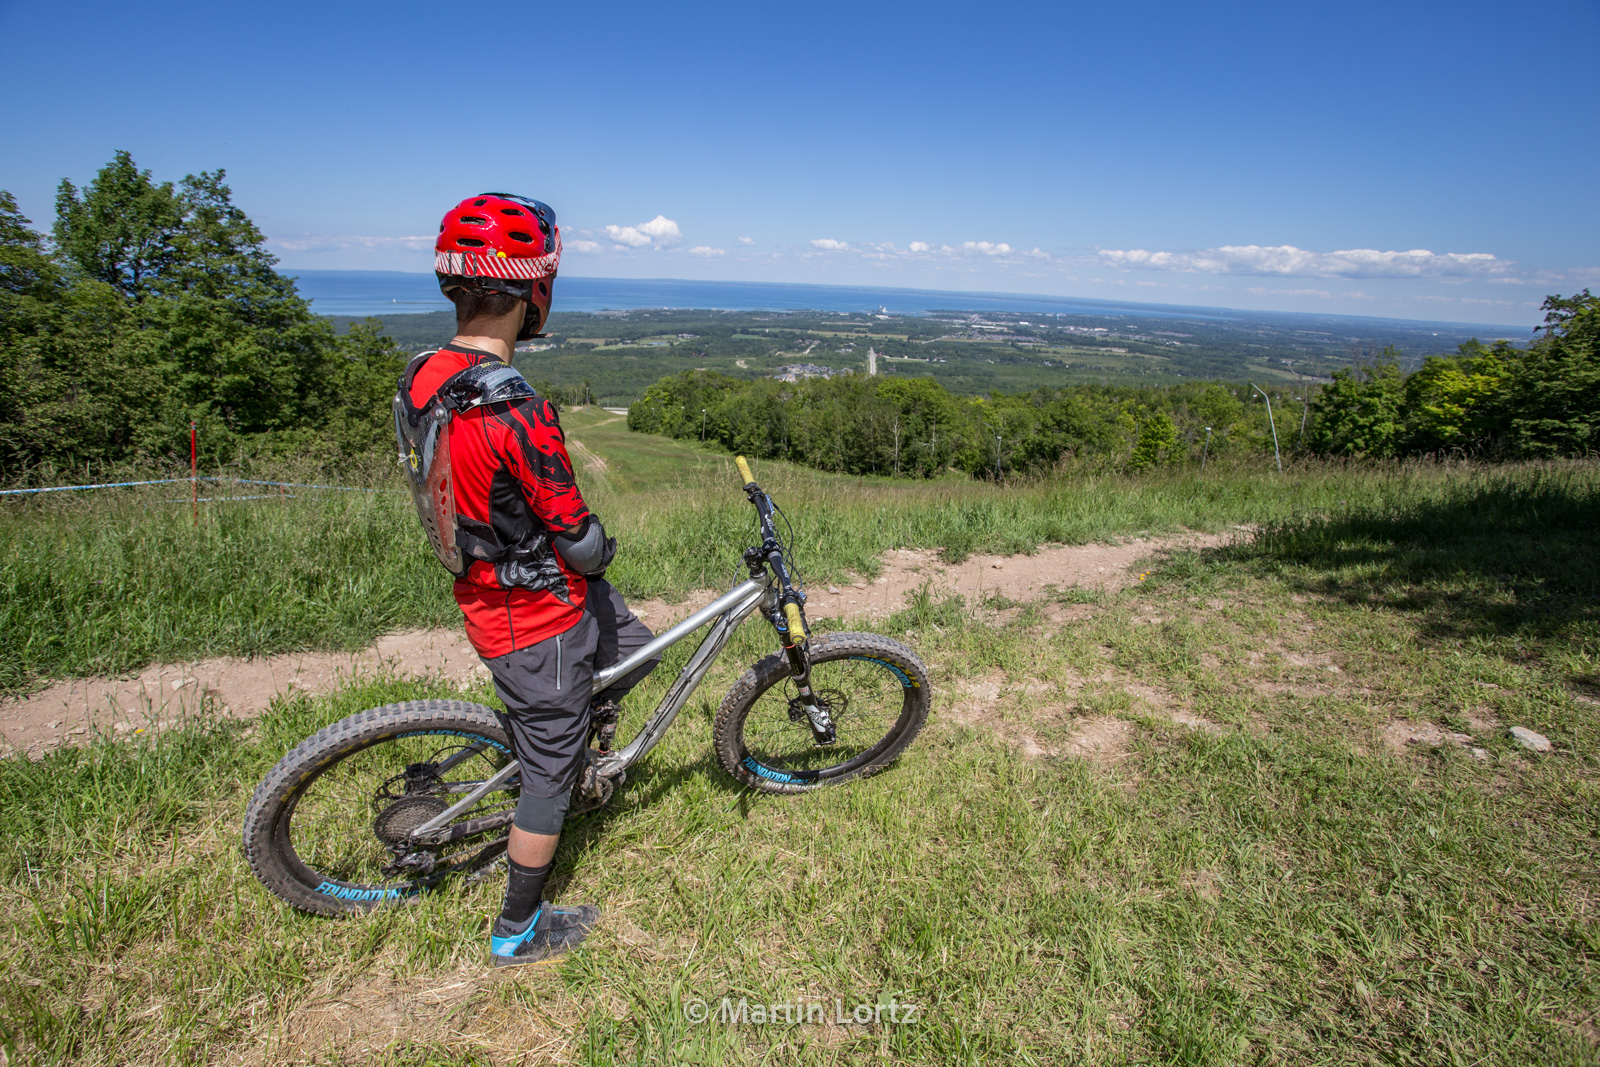 The Mountain Bike Tourist - Collingwood, Ontario - Click on image to read at Pinkbike